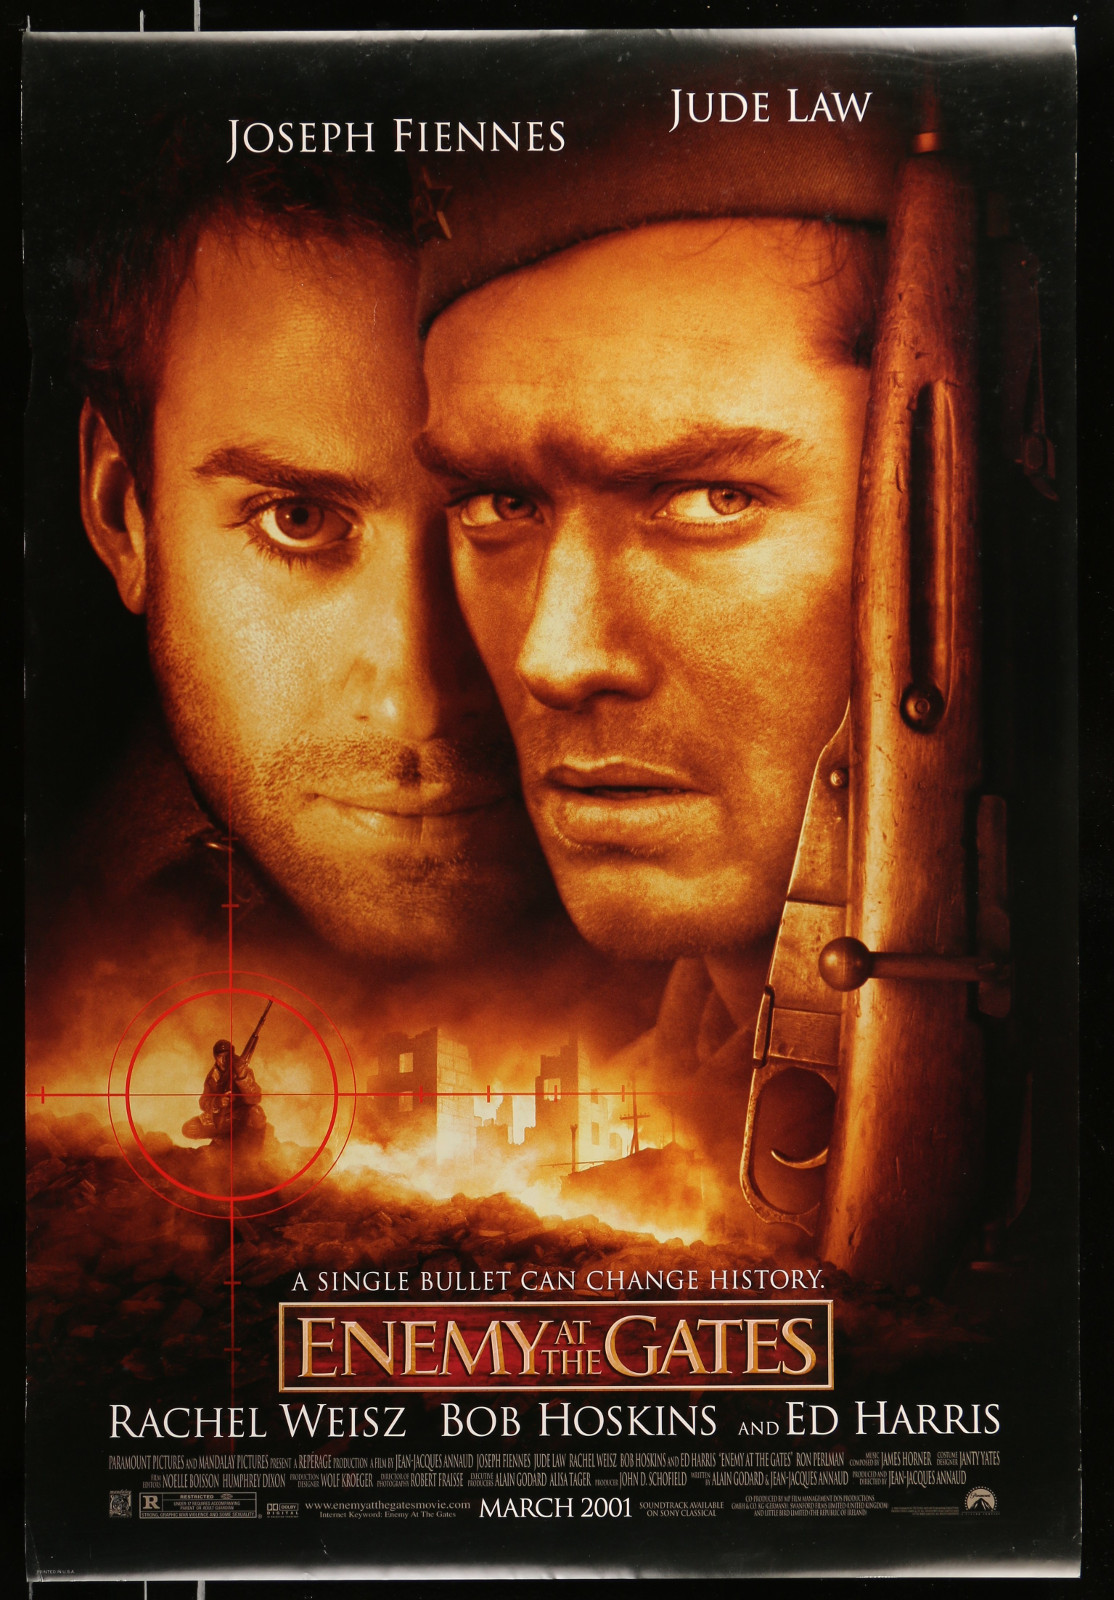 Enemy At The Gates 2A413 A Part Of A Lot 20 Unfolded Mostly Double-Sided 27X40 One-Sheets '90S-00S Great Movie Images!